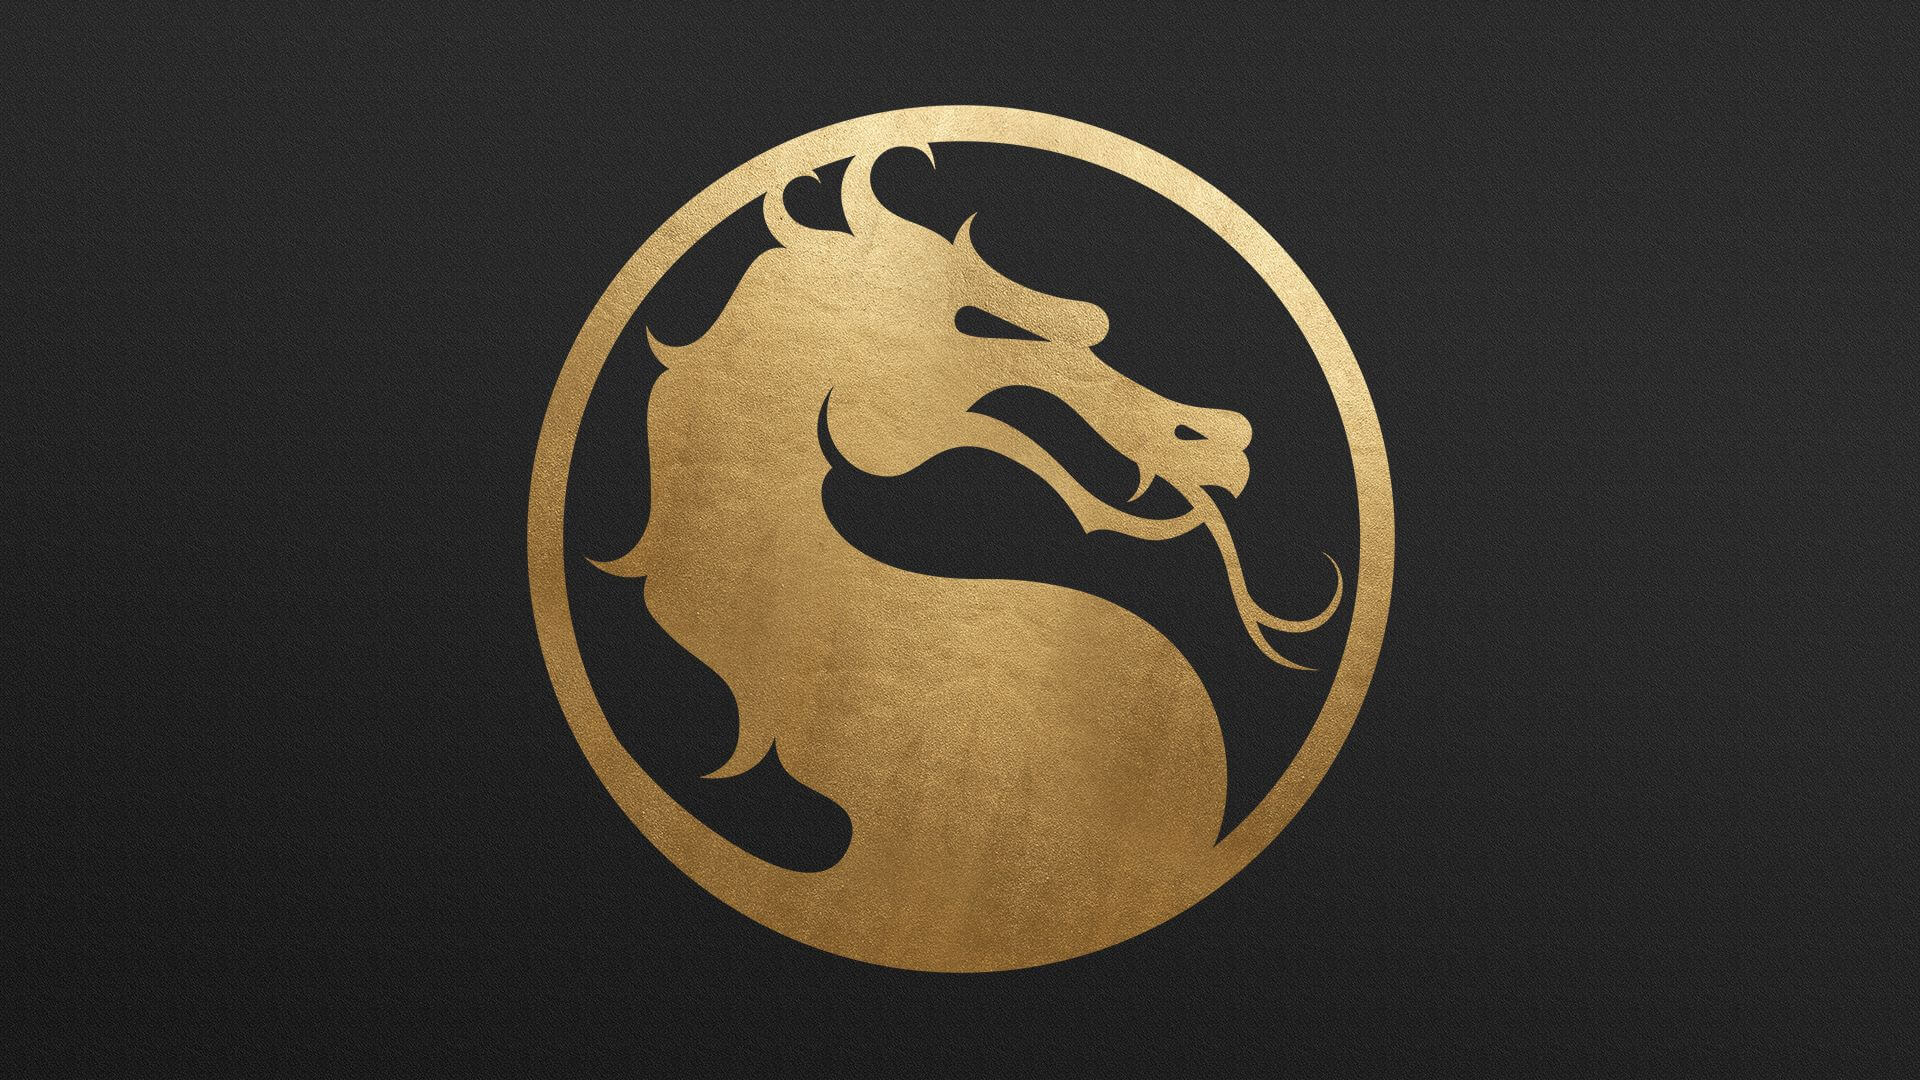 Finals Fights of MK11 Pro Kompetition: EU West - Top 8 Appeared